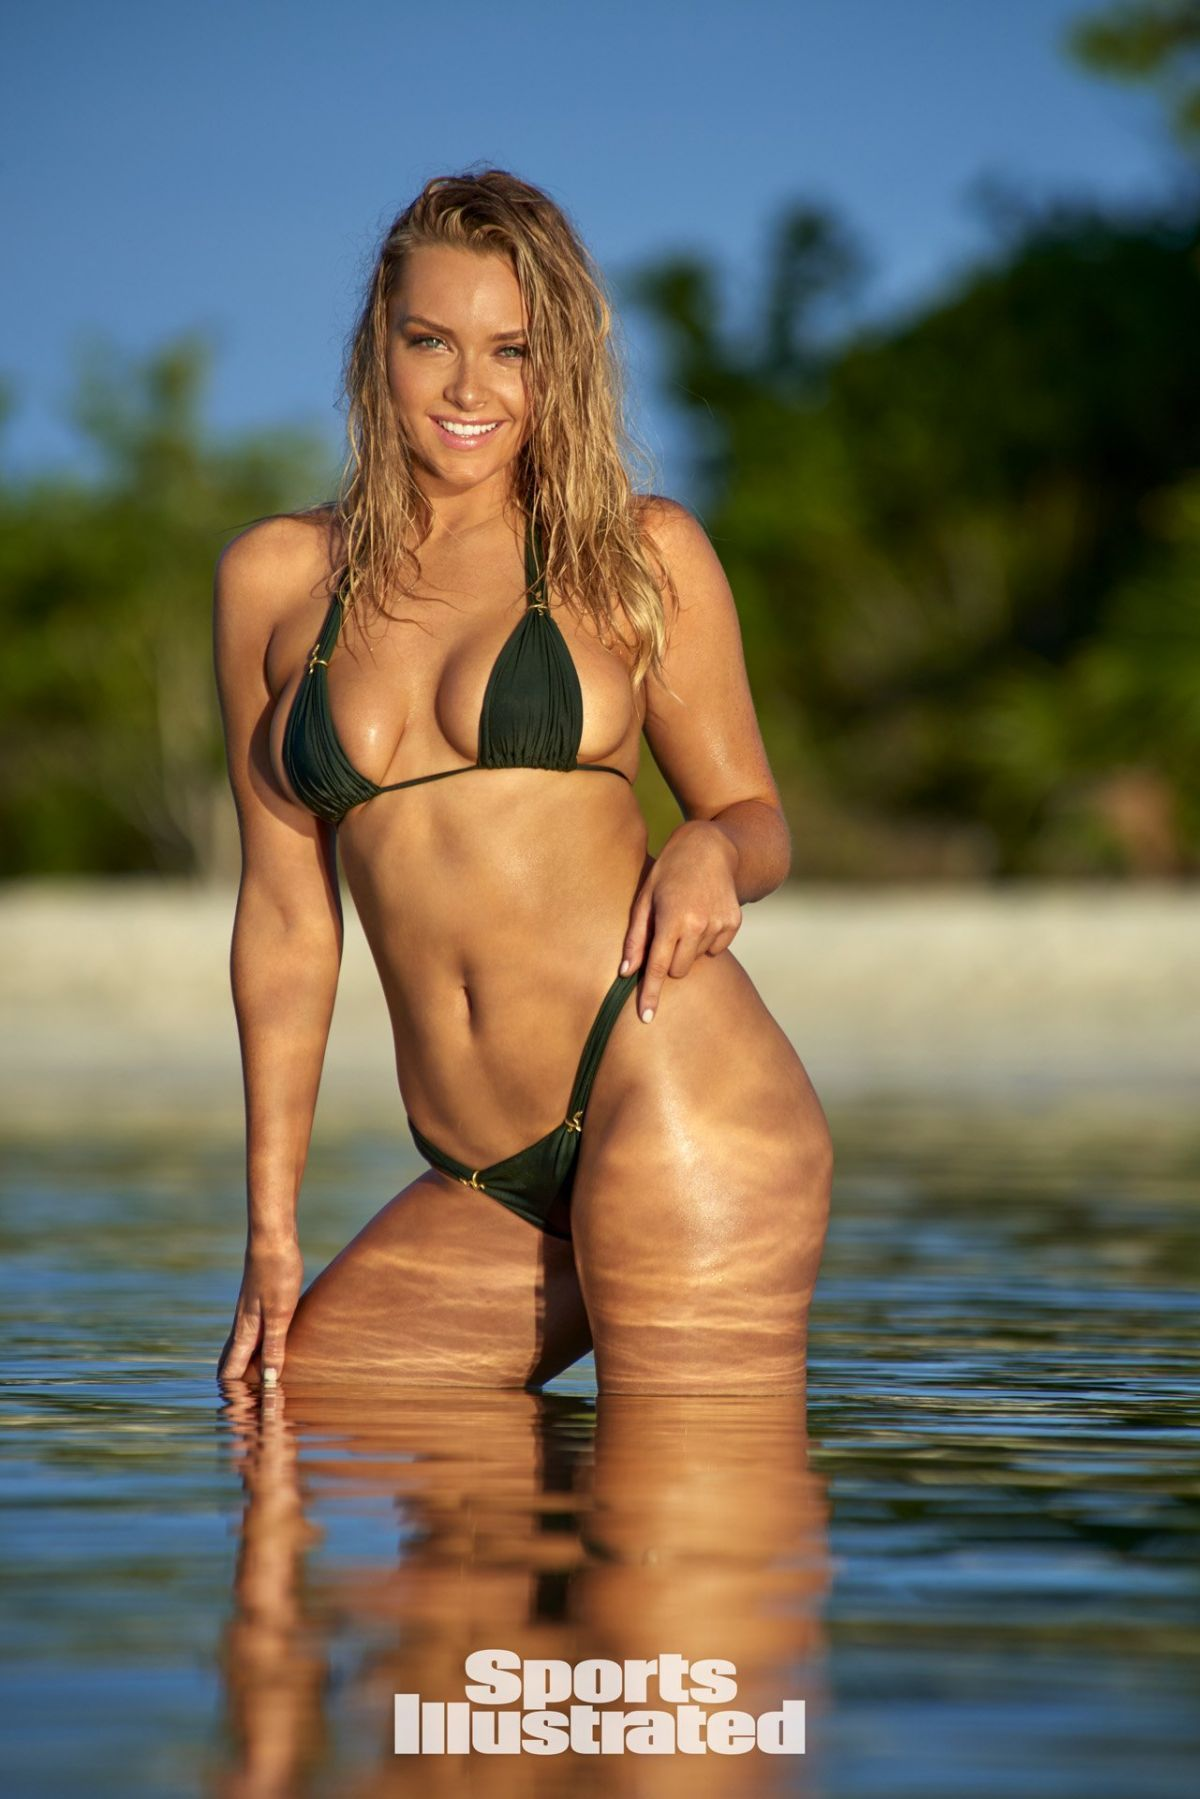 Camille Kostek Sports Illustrated Swimsuit Issue 2018 ...